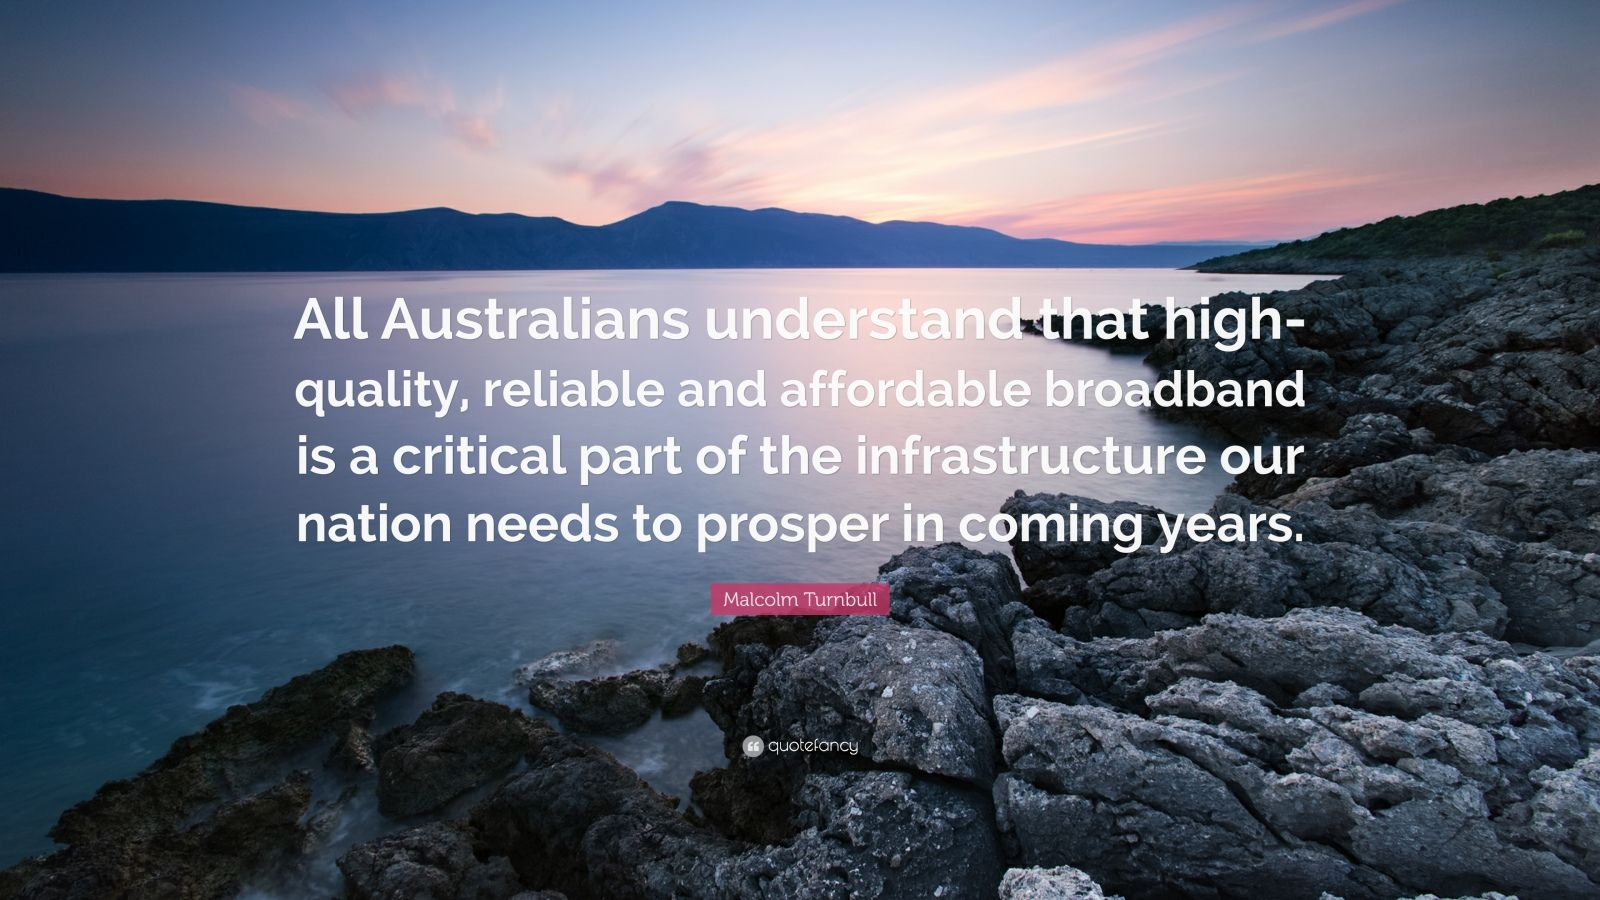 """Malcolm Turnbull Quote: """"All Australians understand that high-quality, reliable and affordable broadband is a critical part of the infrastructure our nation needs to prosper in coming years."""""""